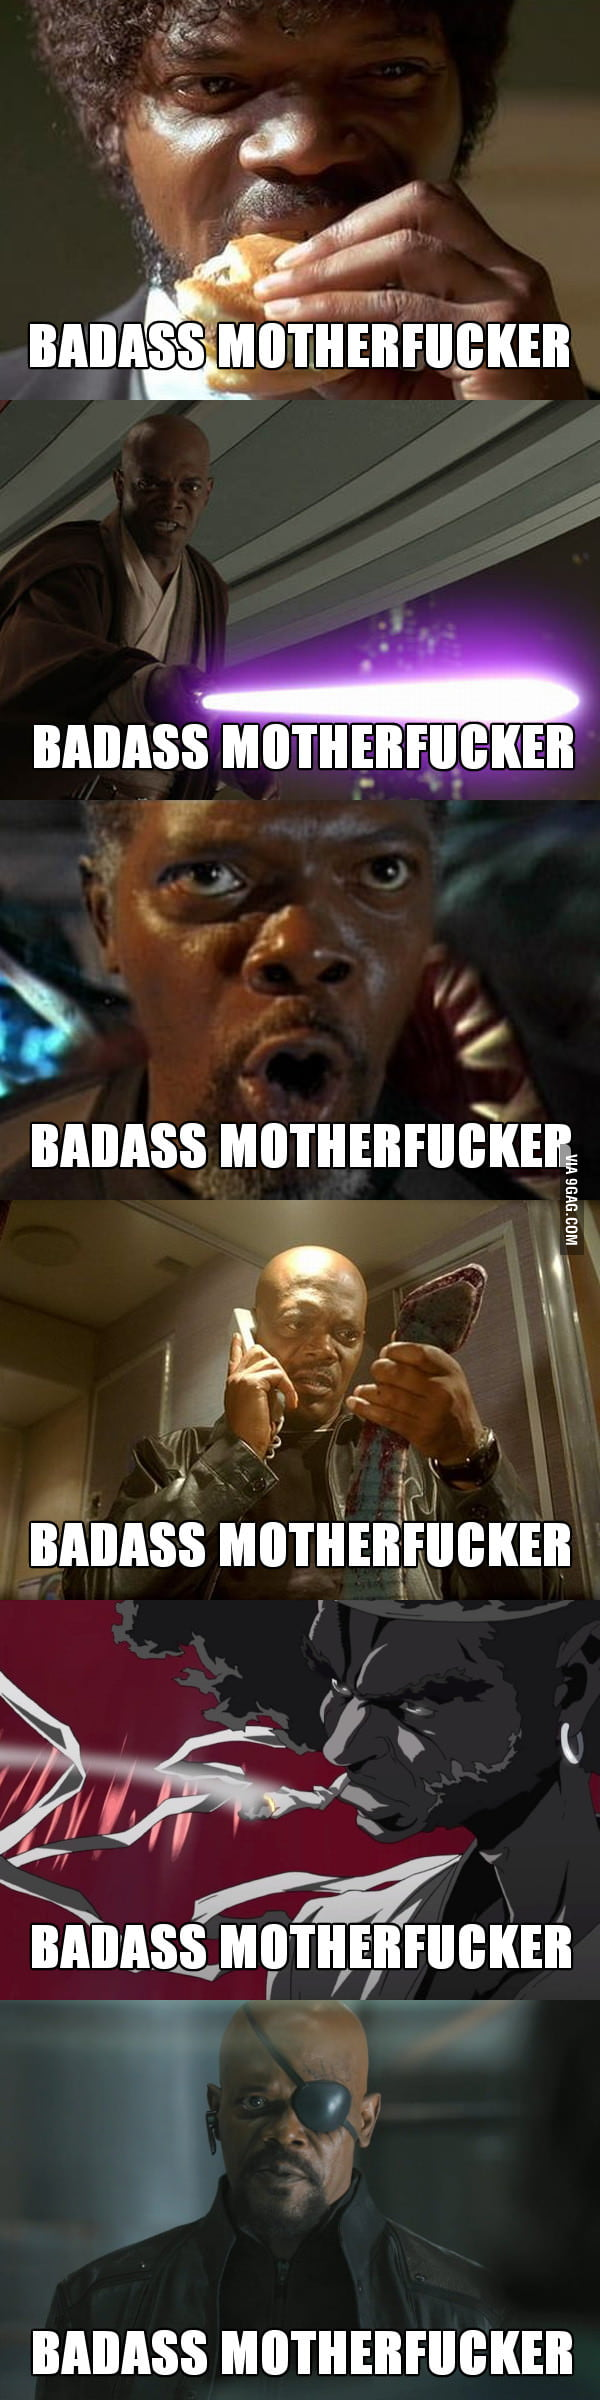 Samuel L. Jackson is the most typecast actor.